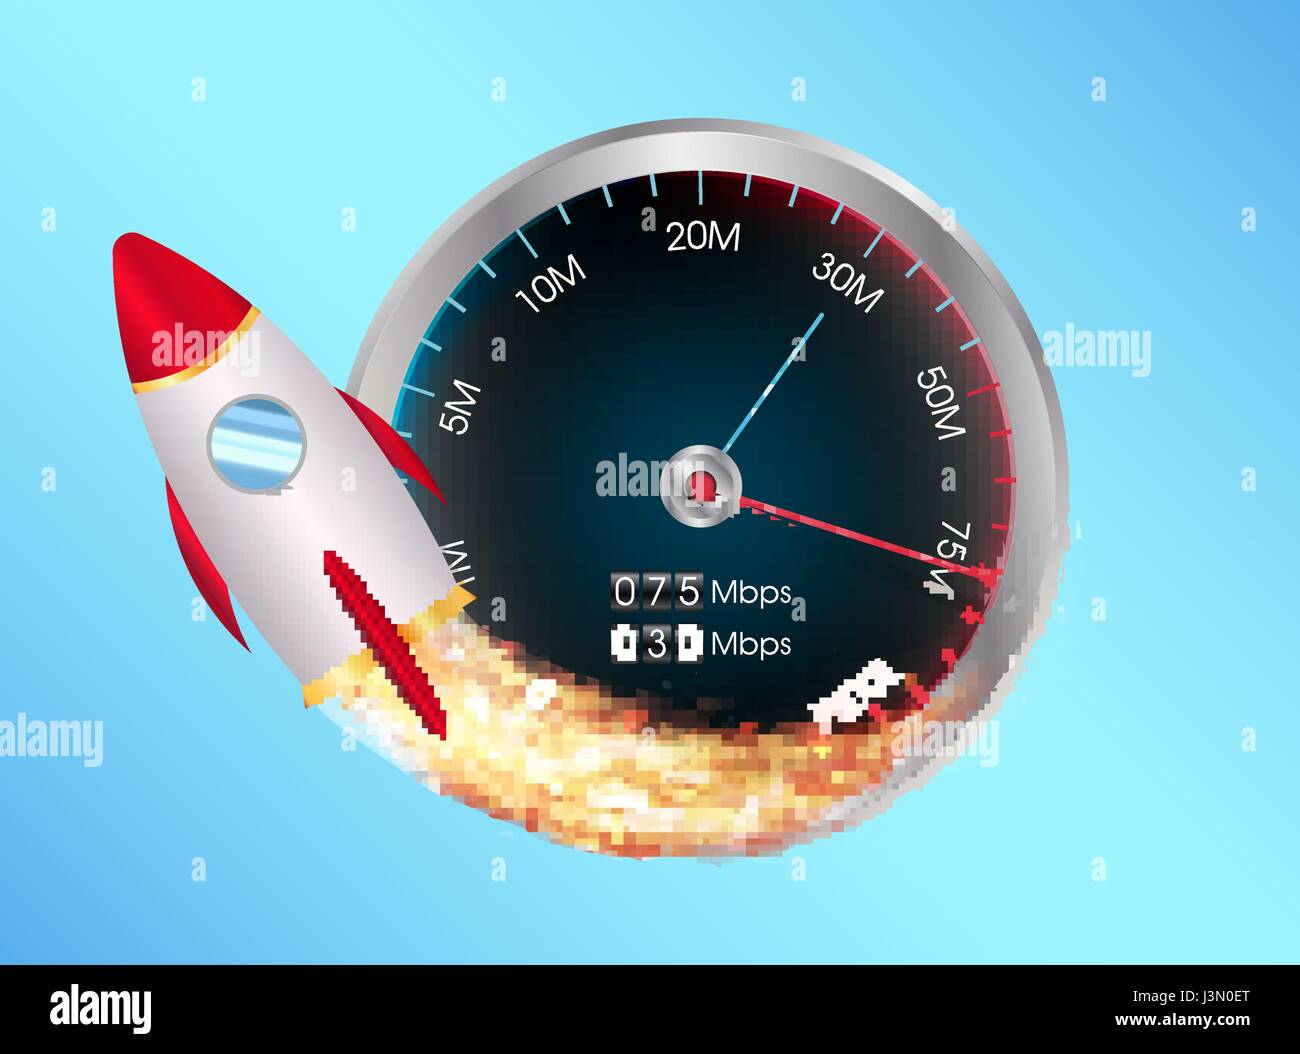 Fast internet speed test meter with toy space rocket stock vector fast internet speed test meter with toy space rocket stopboris